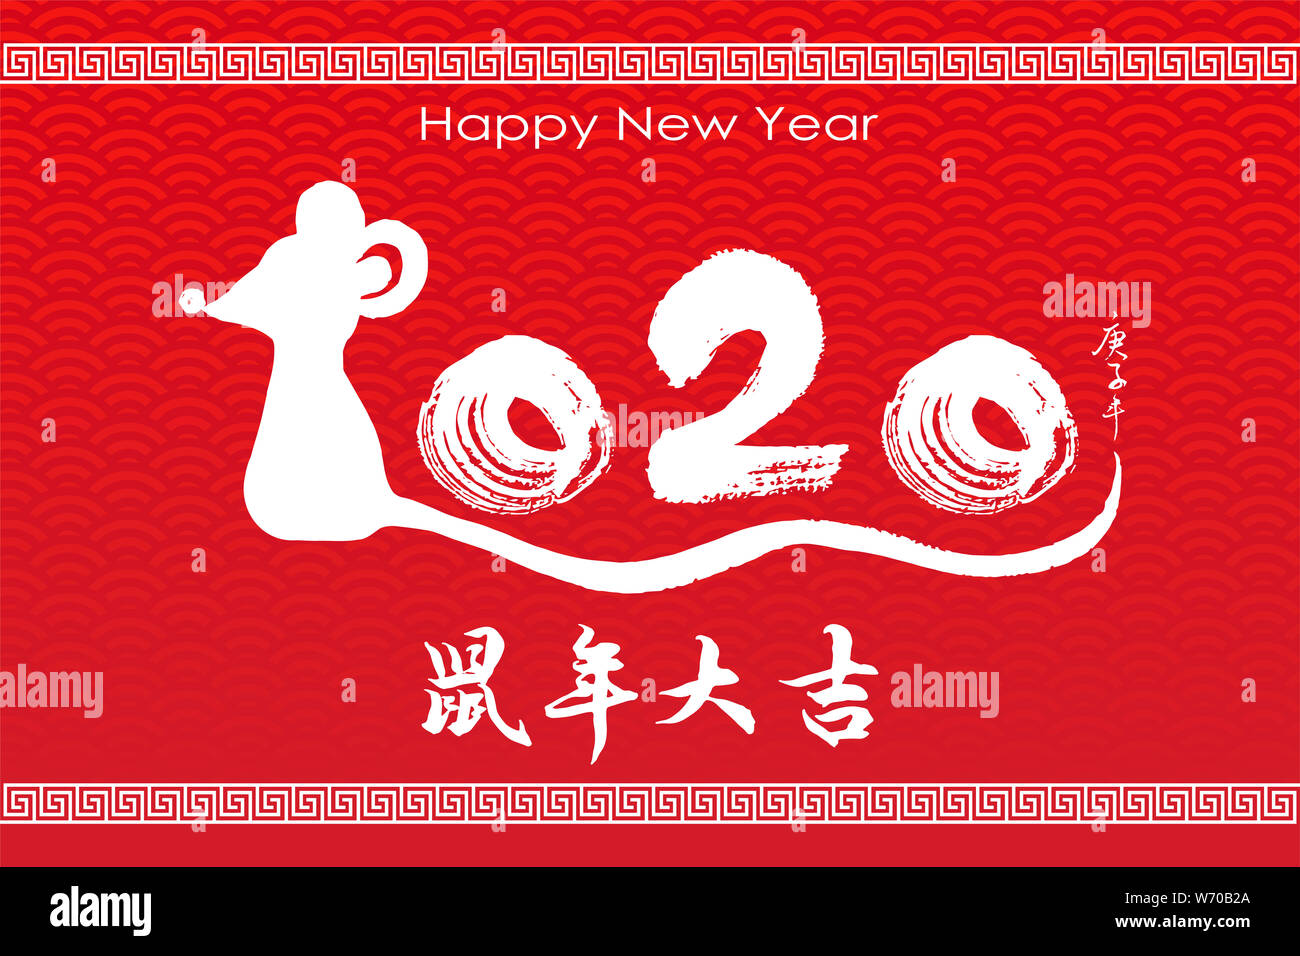 2020 Chinese New Year.Chinese New Year 2020 Year Of The Rat Red Paper Cut Rat